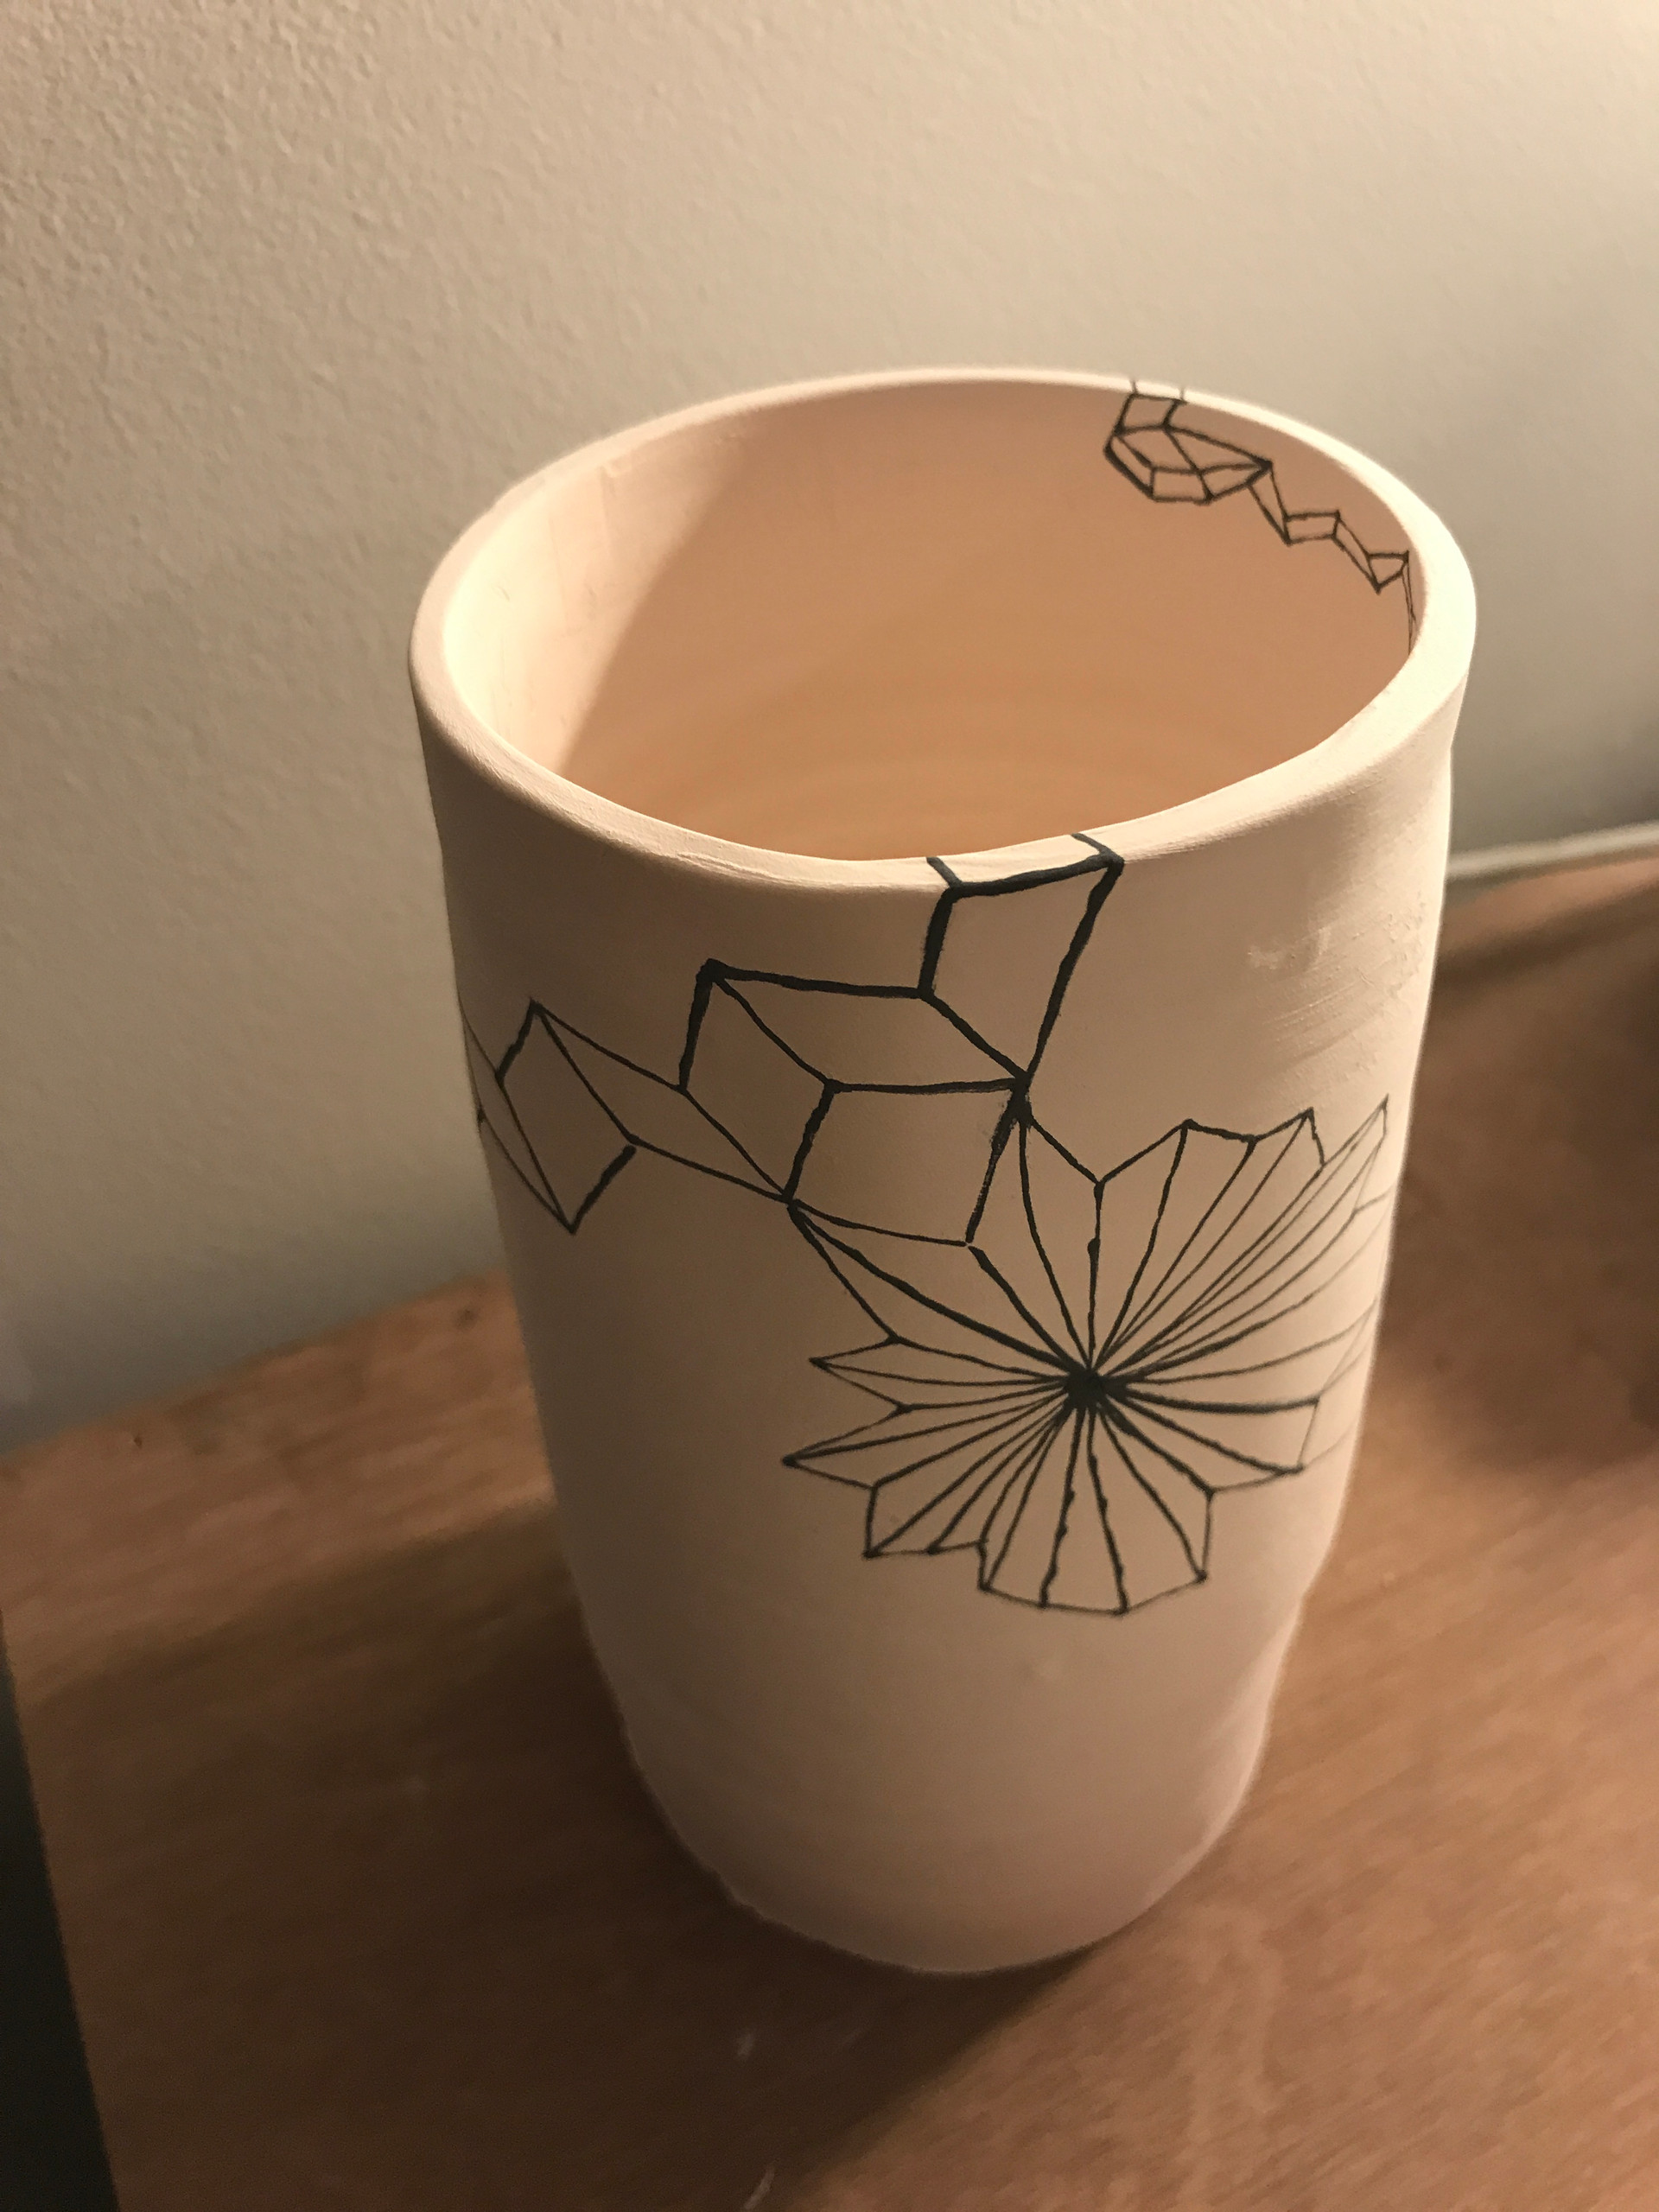 Collaboration with Newtown ceramicist Nicole Gaston (aka Nice Assets). Geometrical designs in perspective on white clay vase. This is a work in progress shot: the vase has not been glazed or fired at this stage.